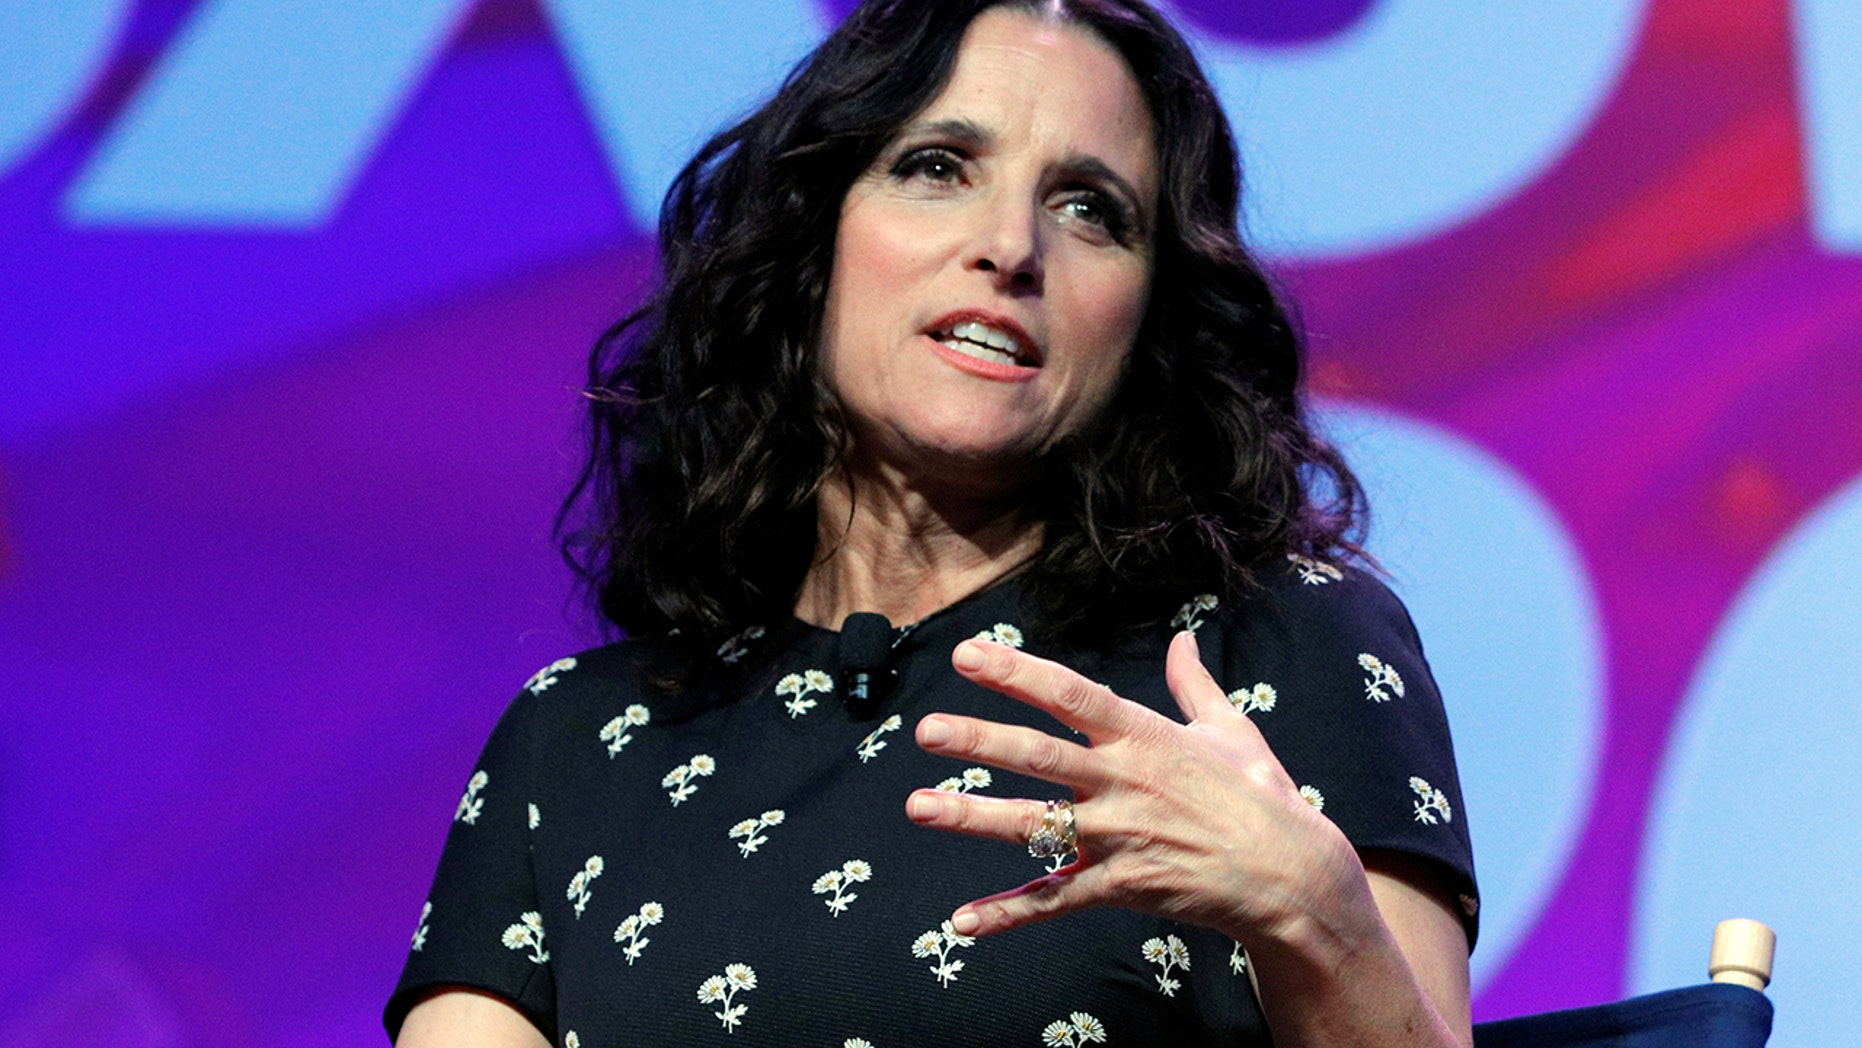 Julia Louis-Dreyfus joins the cast and showrunner of the television series Veep for a discussion at the South by Southwest (SXSW) Music Film Interactive Festival 2017 in Austin, Texas, U.S., March 13, 2017.